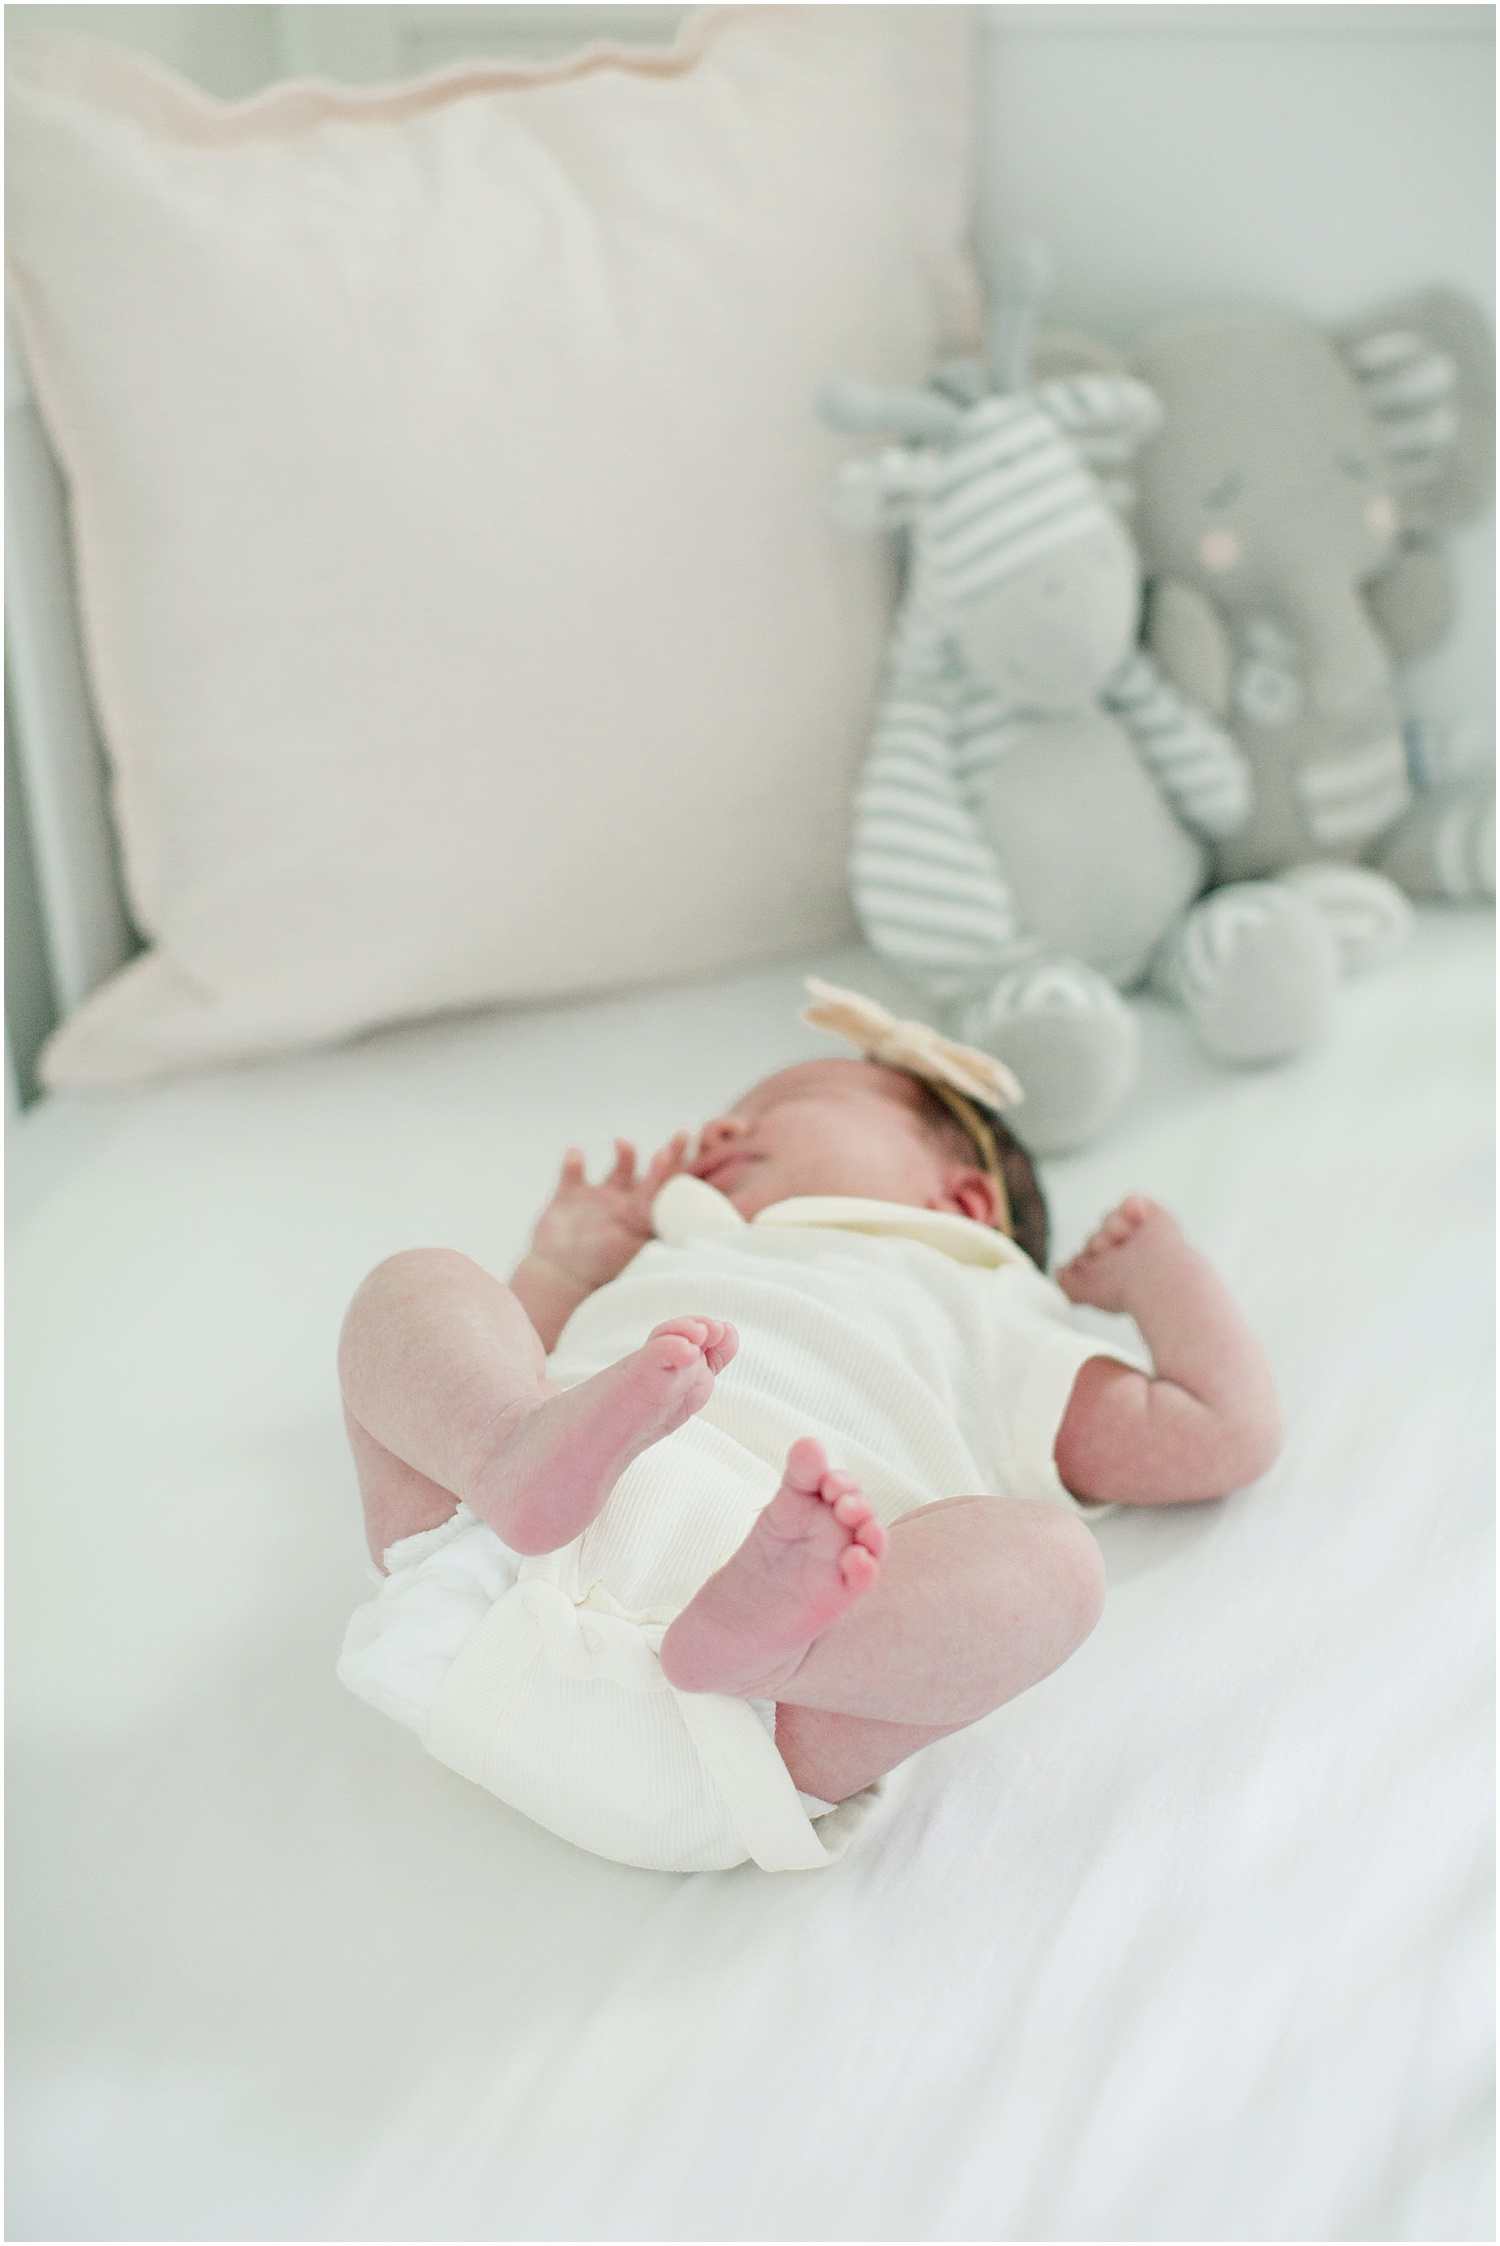 Ashley Powell Photography Quinn Newborn Blog Images_0080.jpg